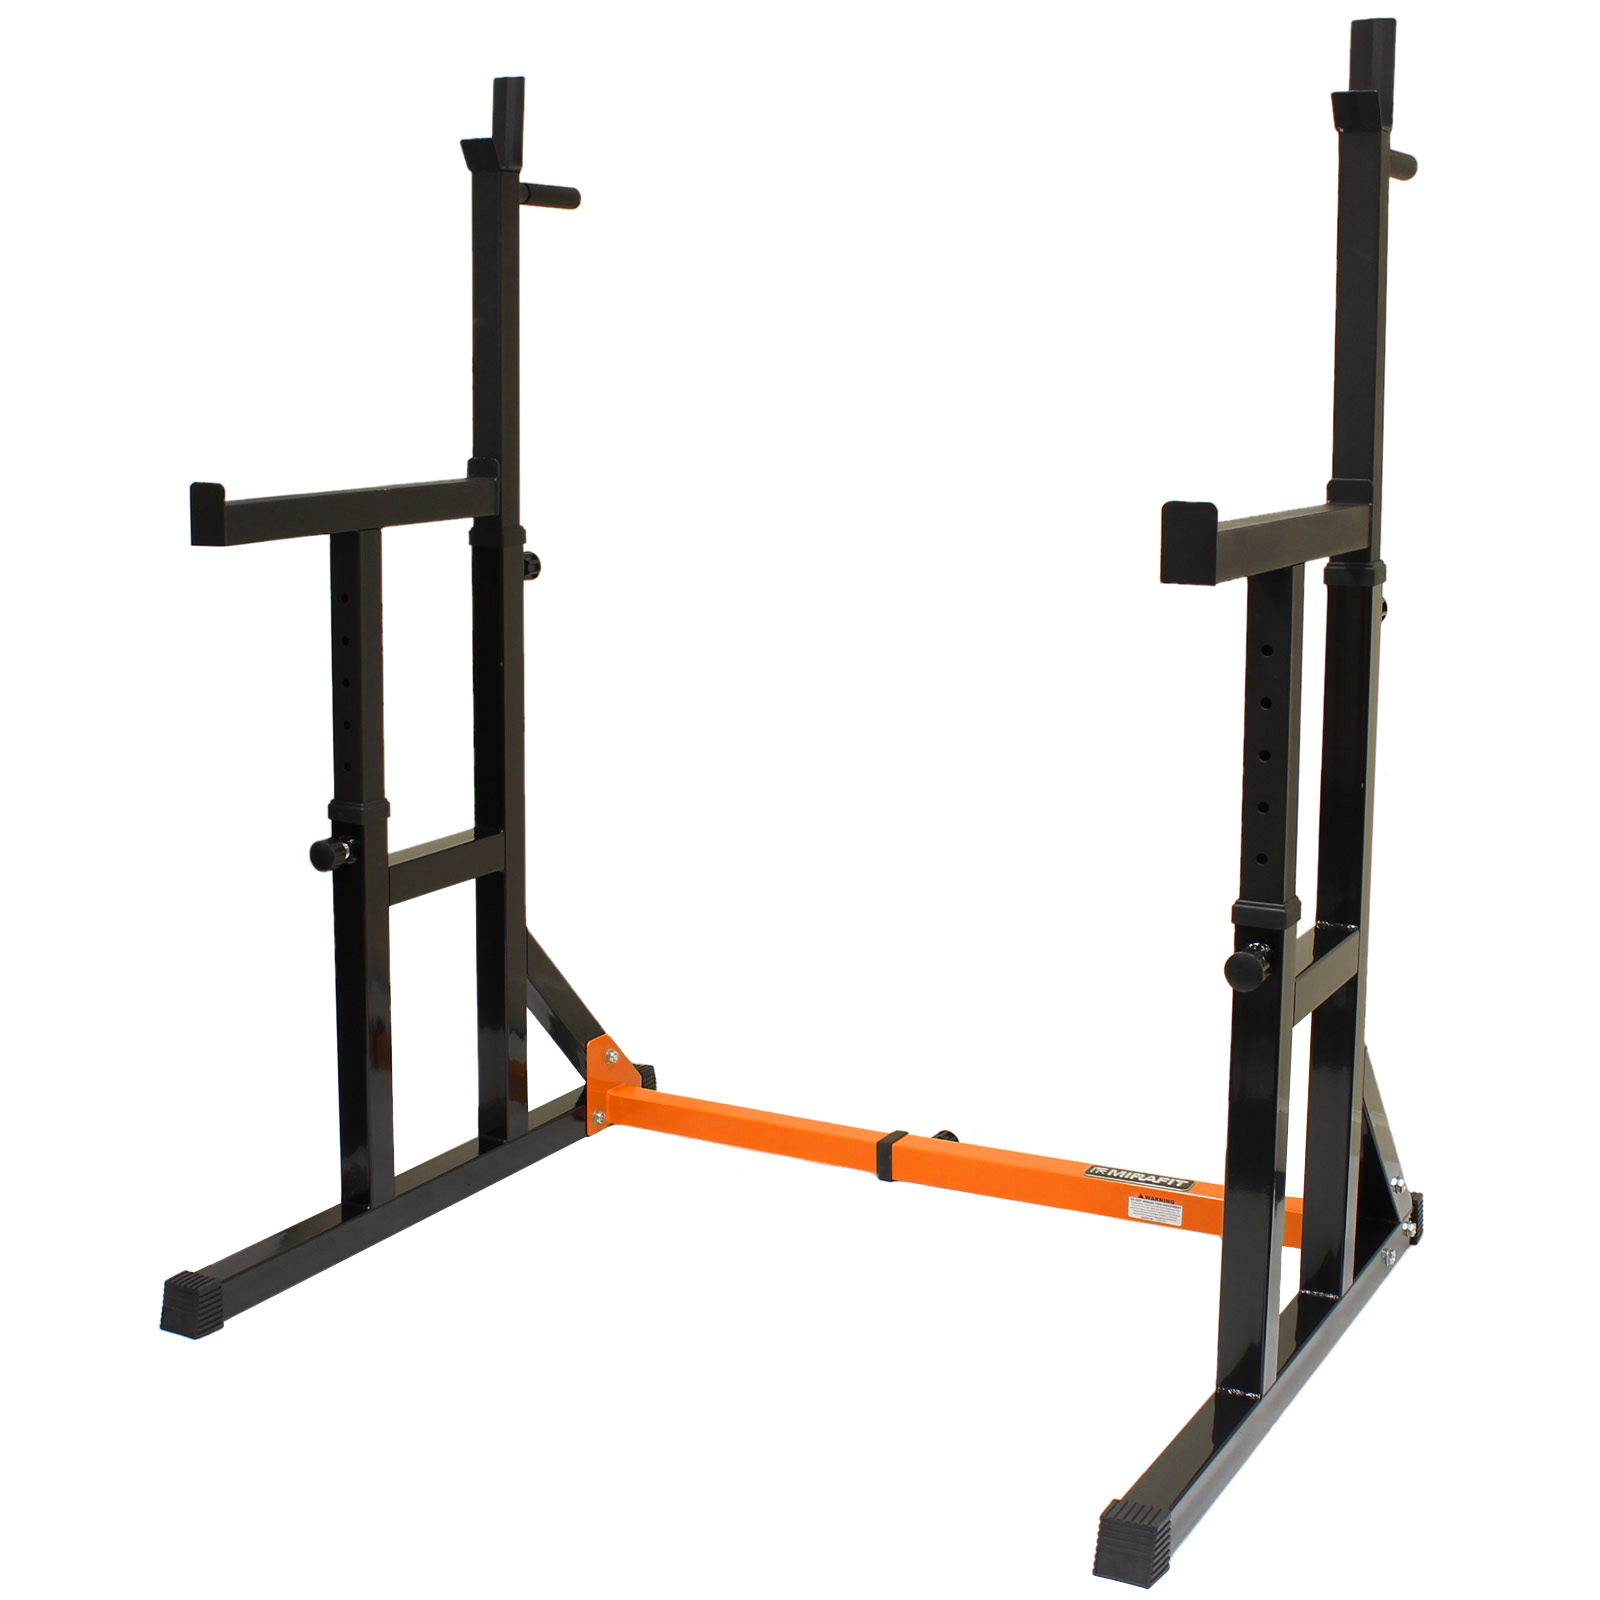 inflow press xrs weight p content power cancel gold rack olympic inflowcomponent res gym golds global squat workout s stand bench lifting